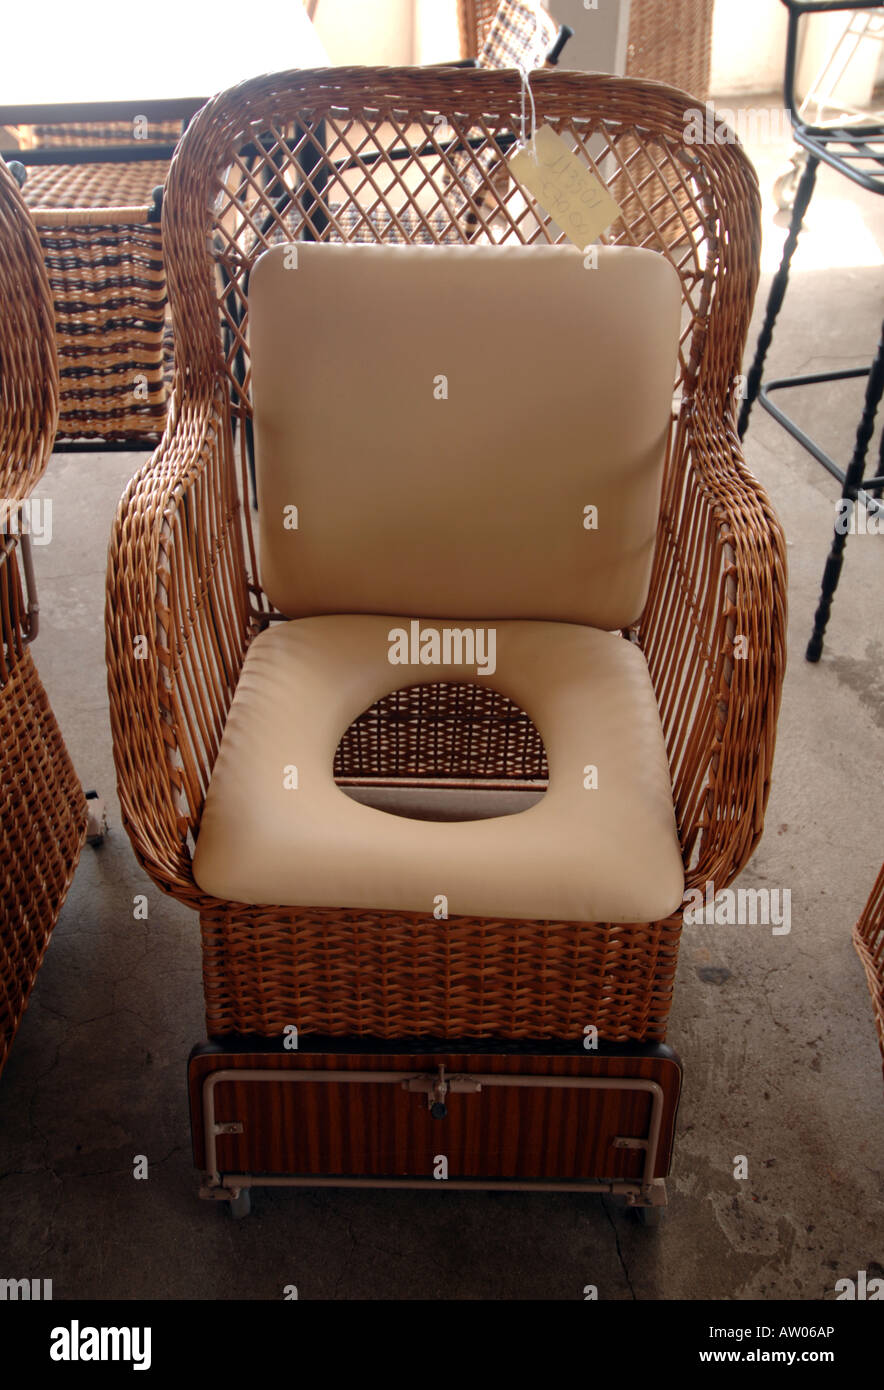 Commode Chair Stock Photos & Commode Chair Stock Images - Alamy